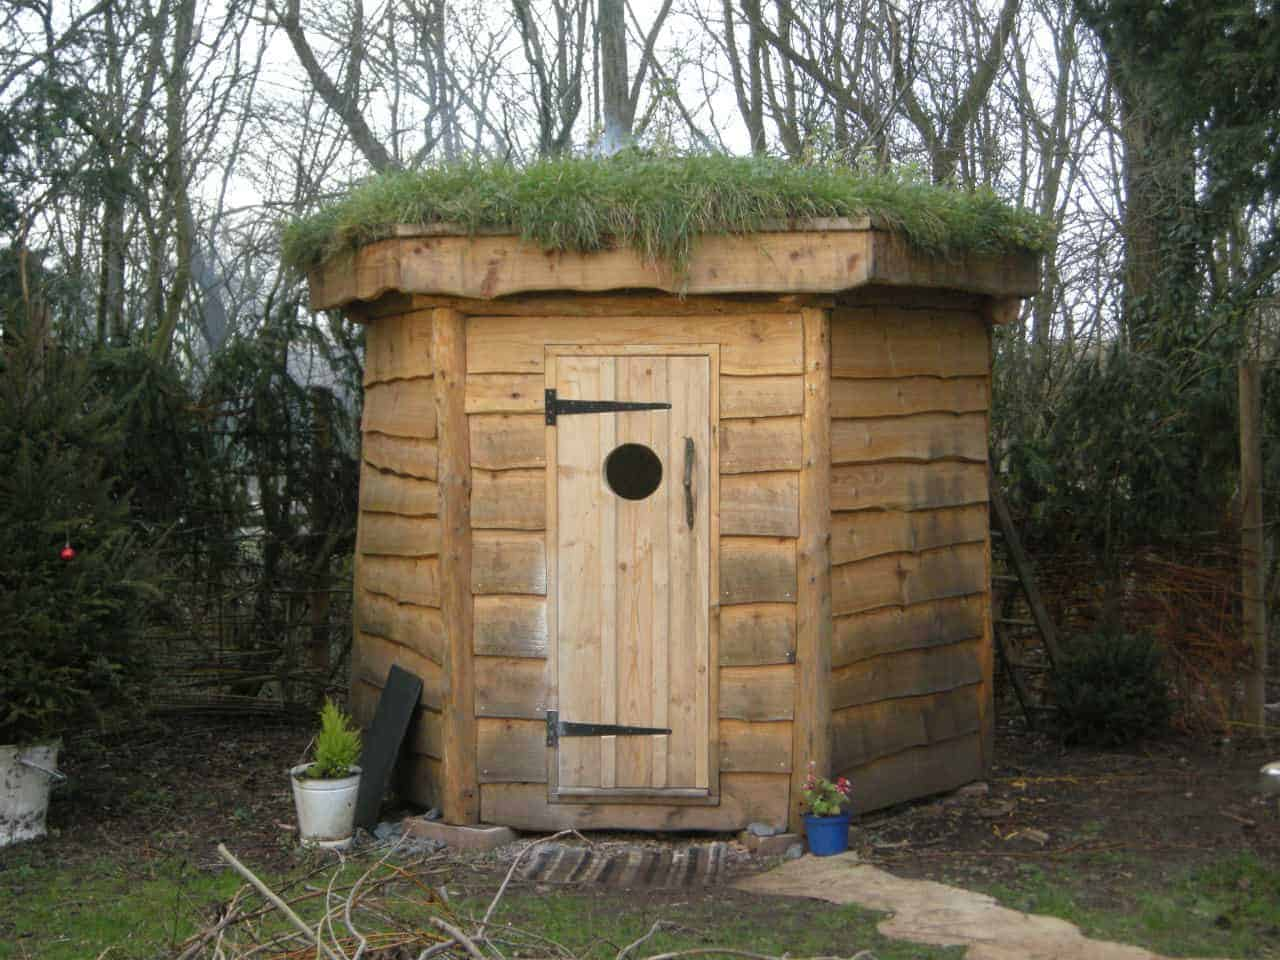 Hexagonal Timber Frame Sauna With Green Roof - sheds-huts-treehouses